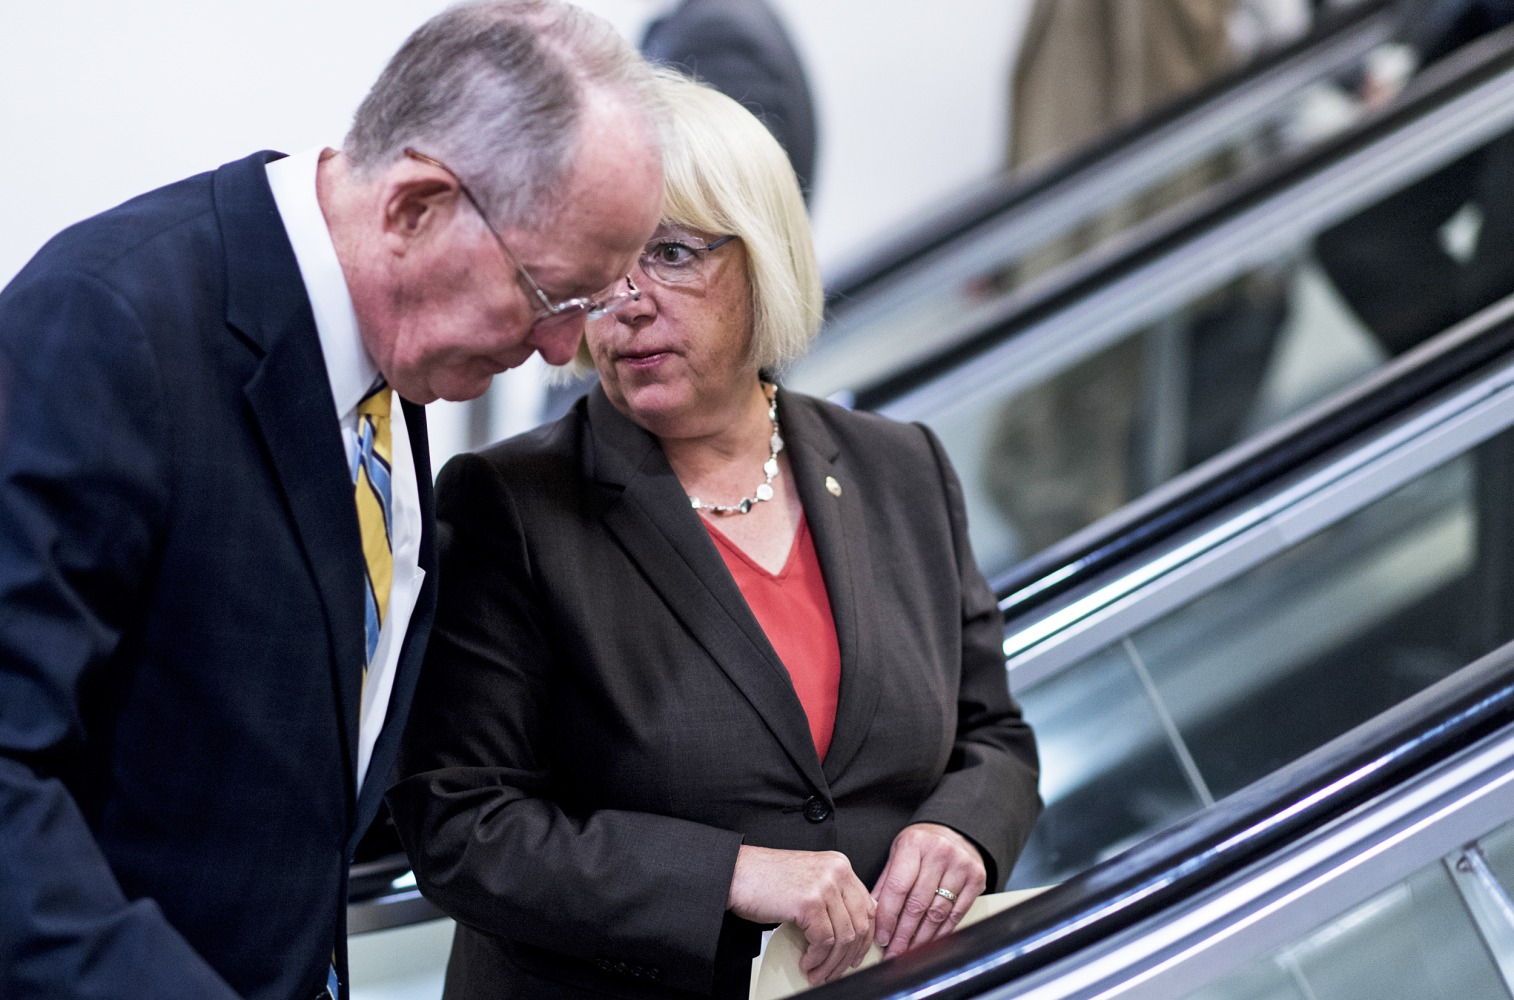 Senator Murray strikes a tentative deal over Obamacare subsidies